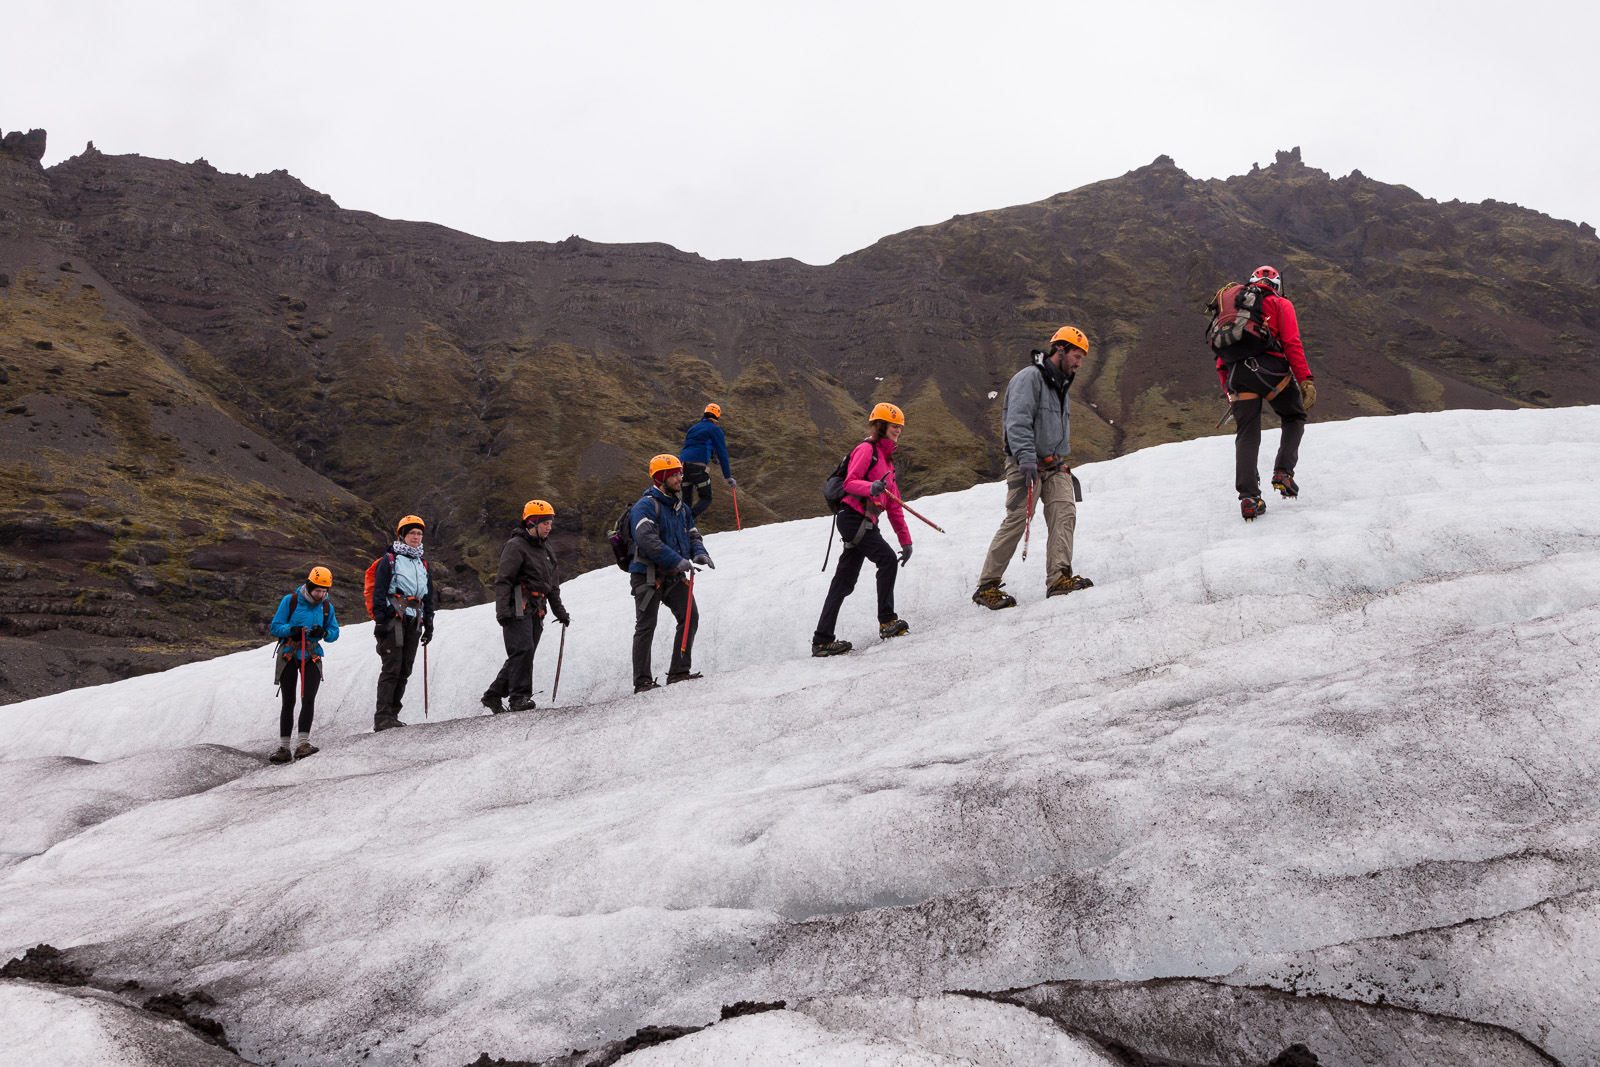 If you've never tried hiking on a glacier, you should add it to your list - it is great fun!